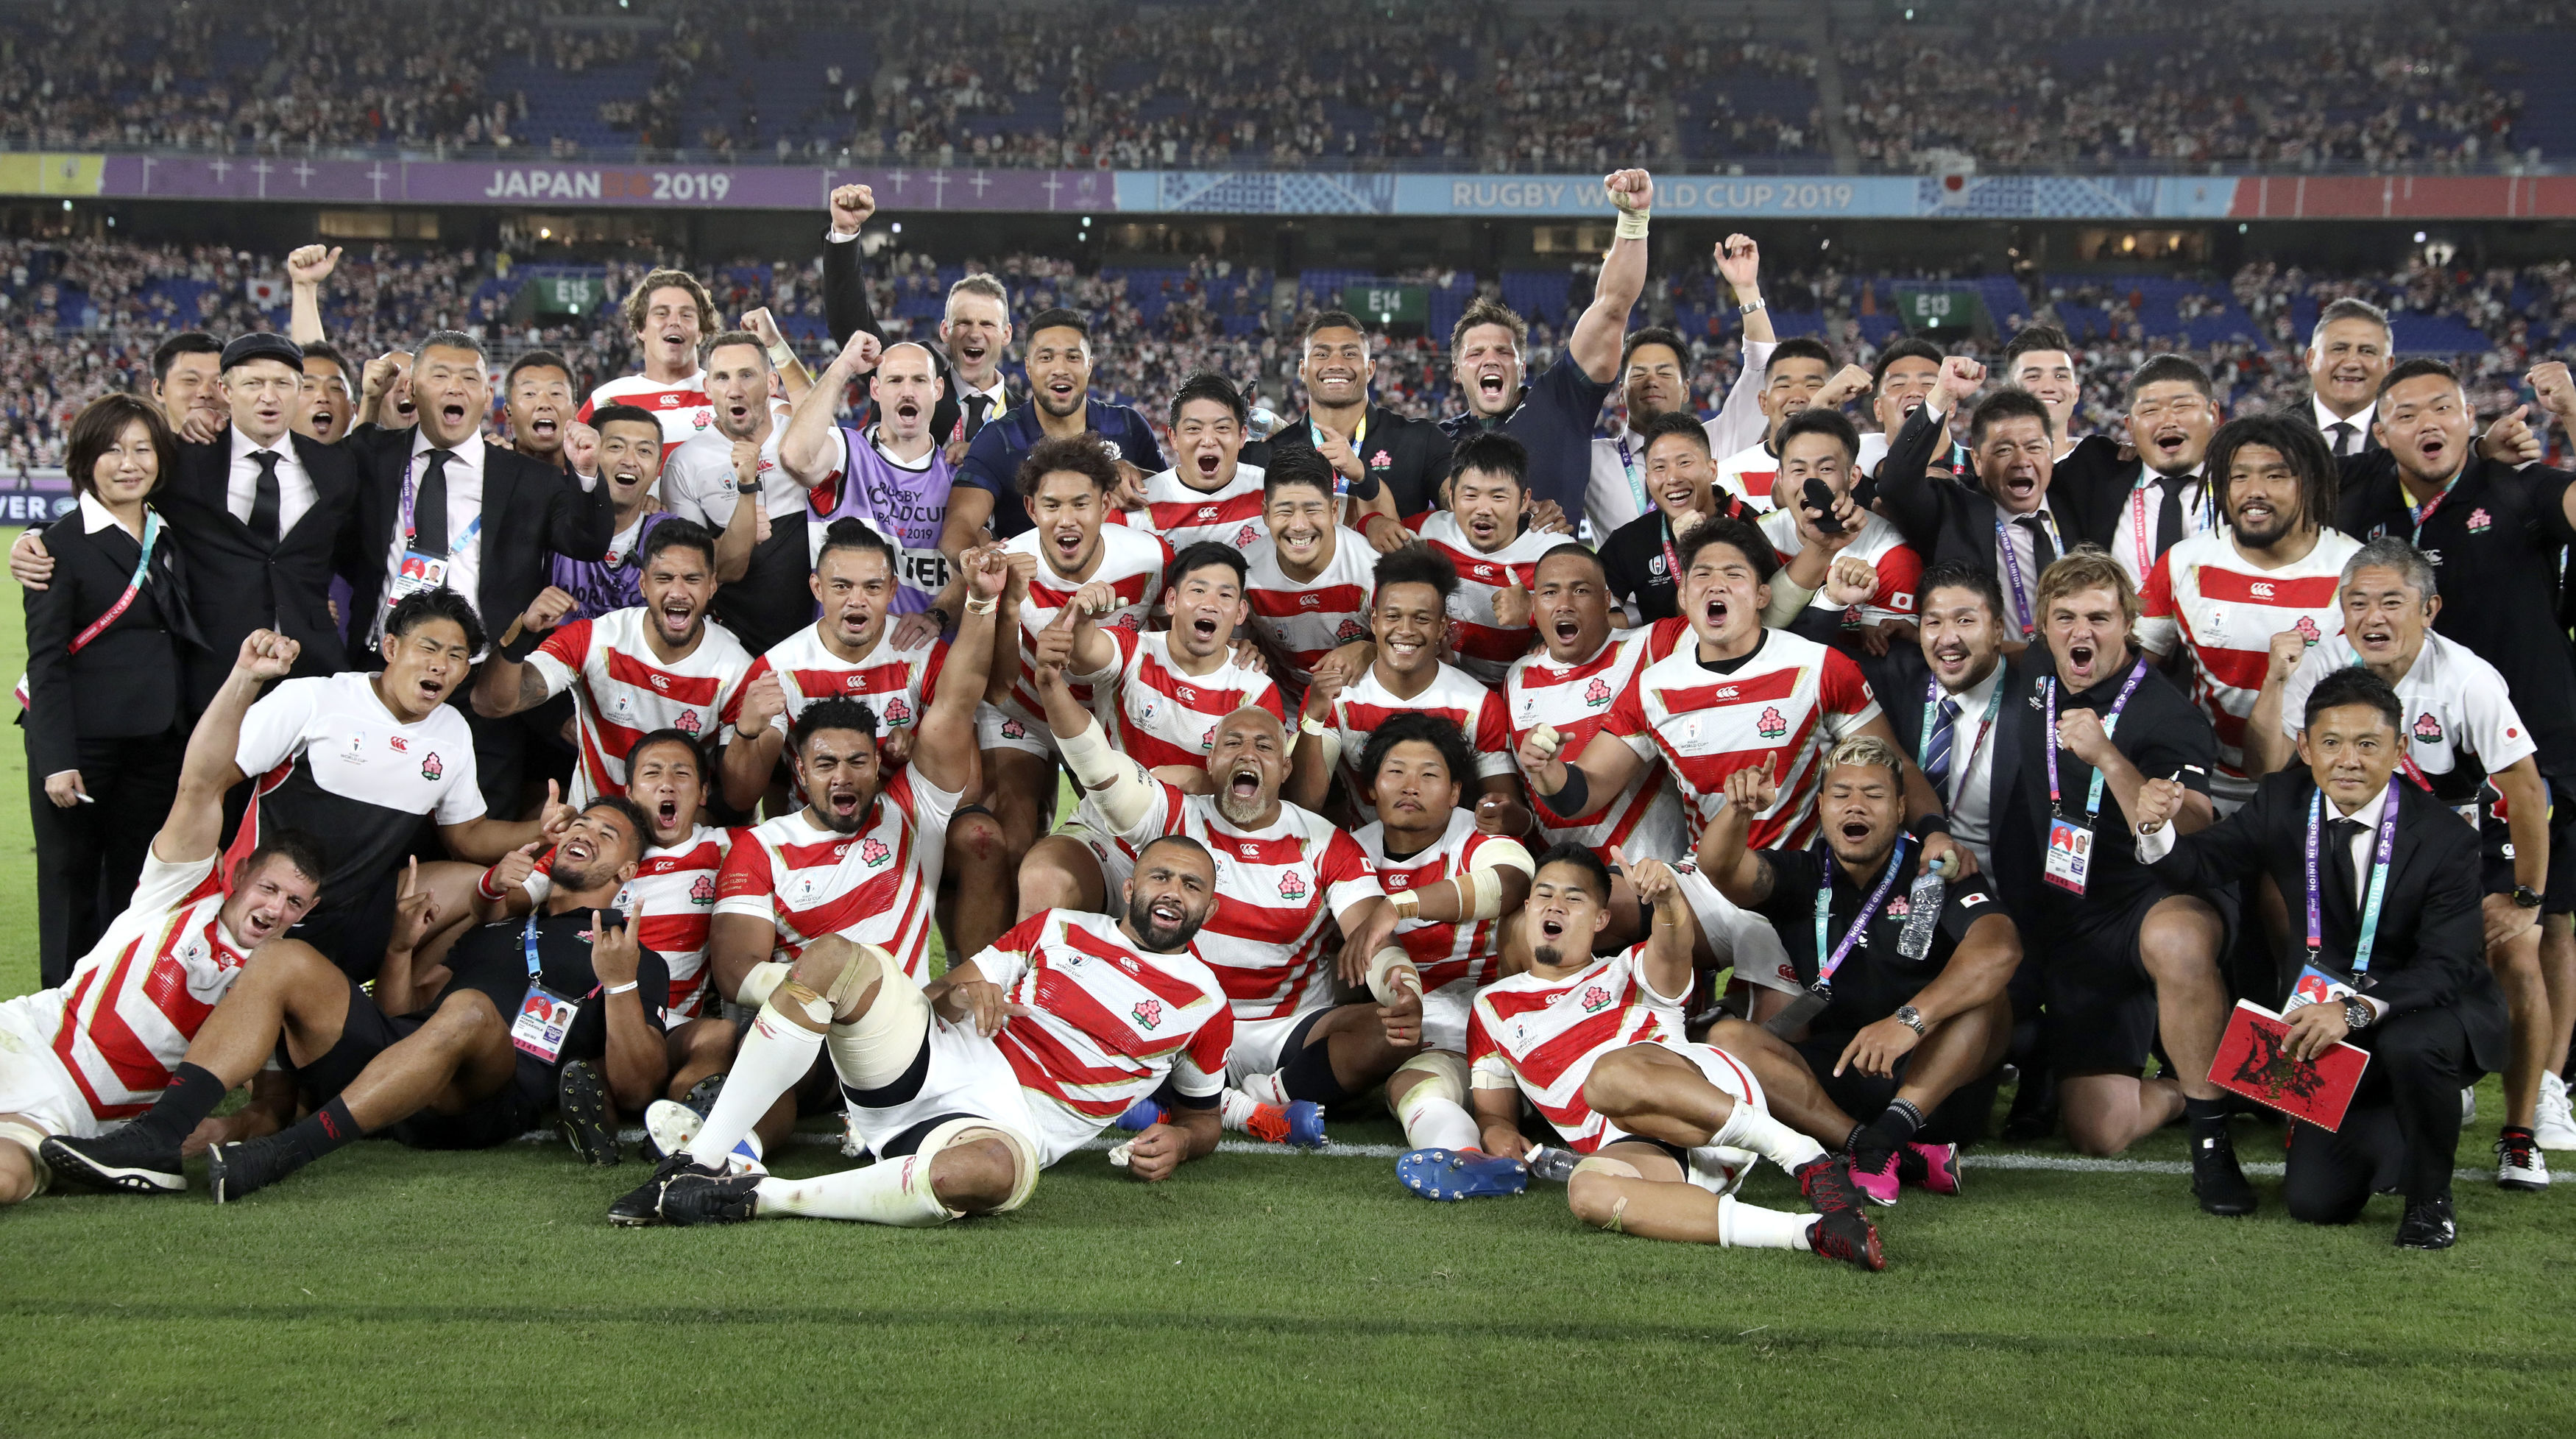 Japan players and management celebrate after defeating Scotland.